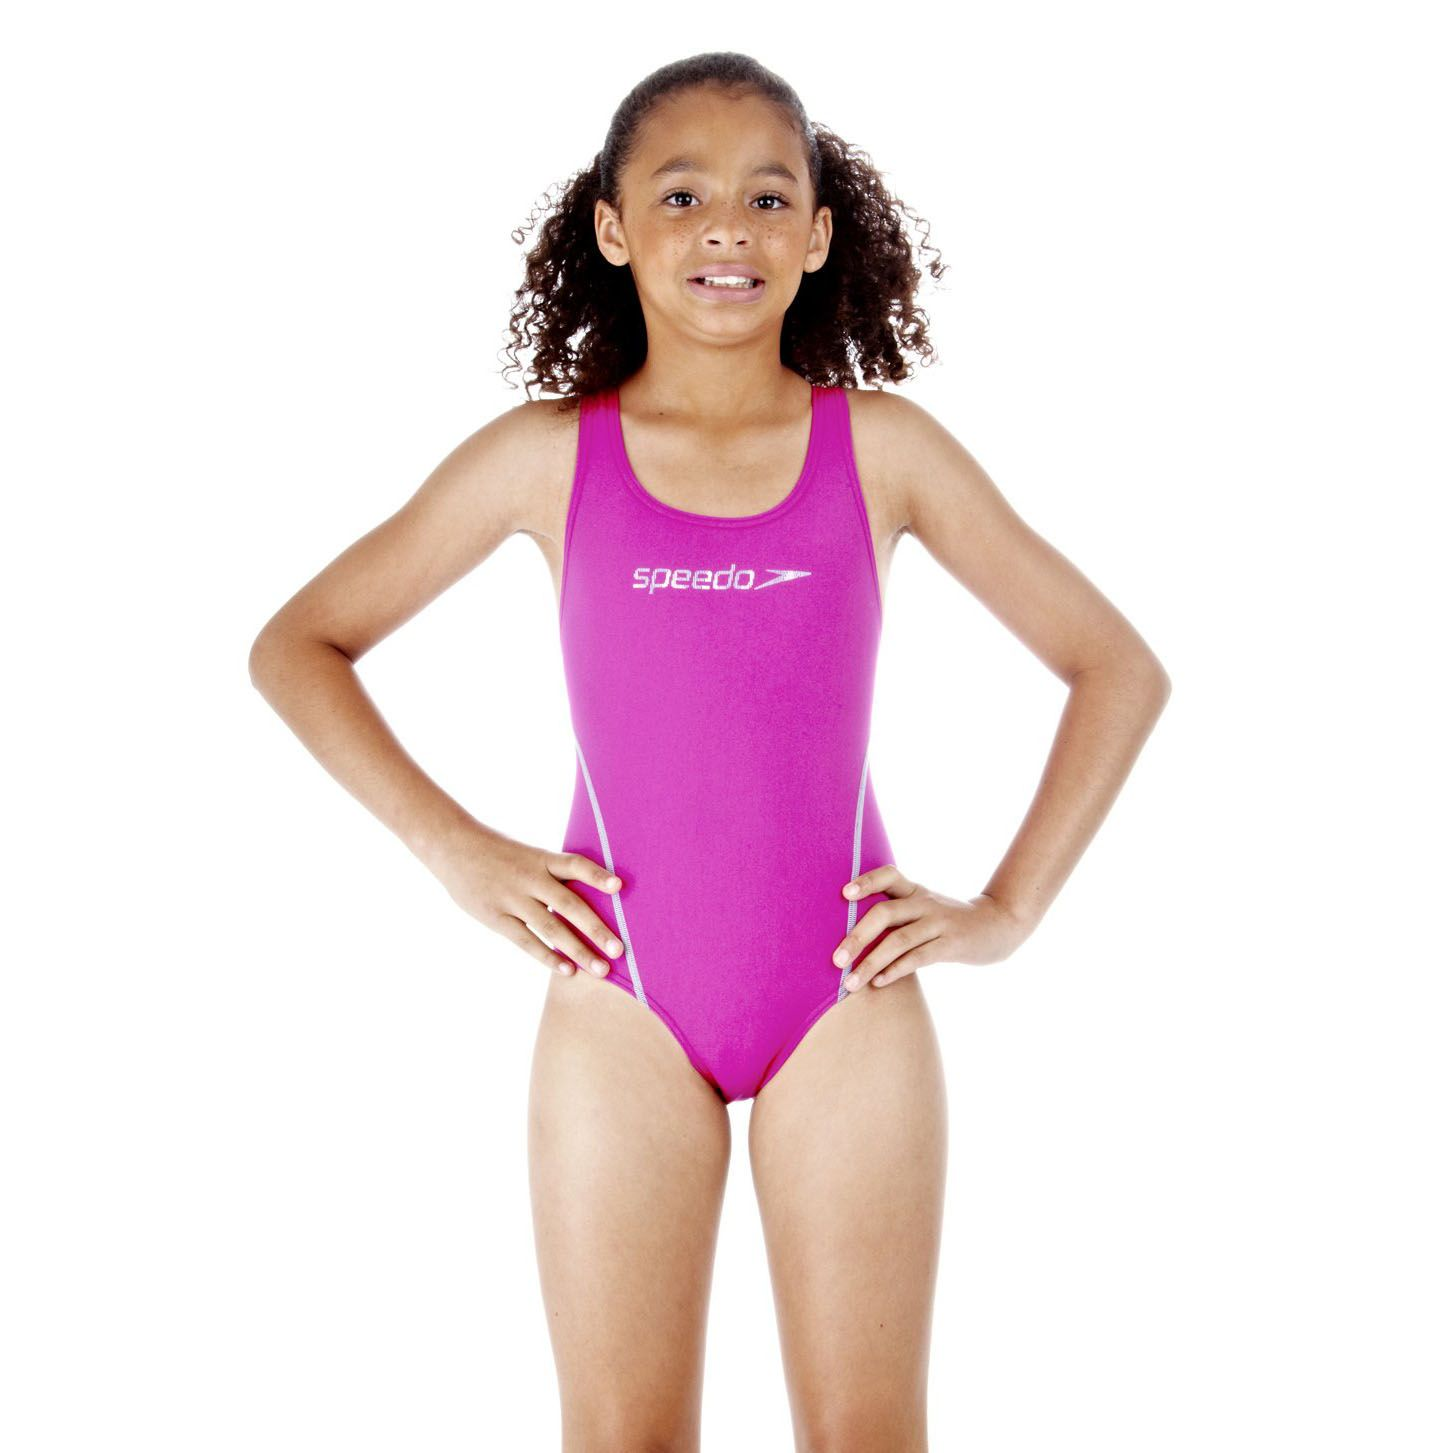 a23b894e5d8 Swimwear. She will sure make a splash in these colorful, fun and  fashionable swimsuits